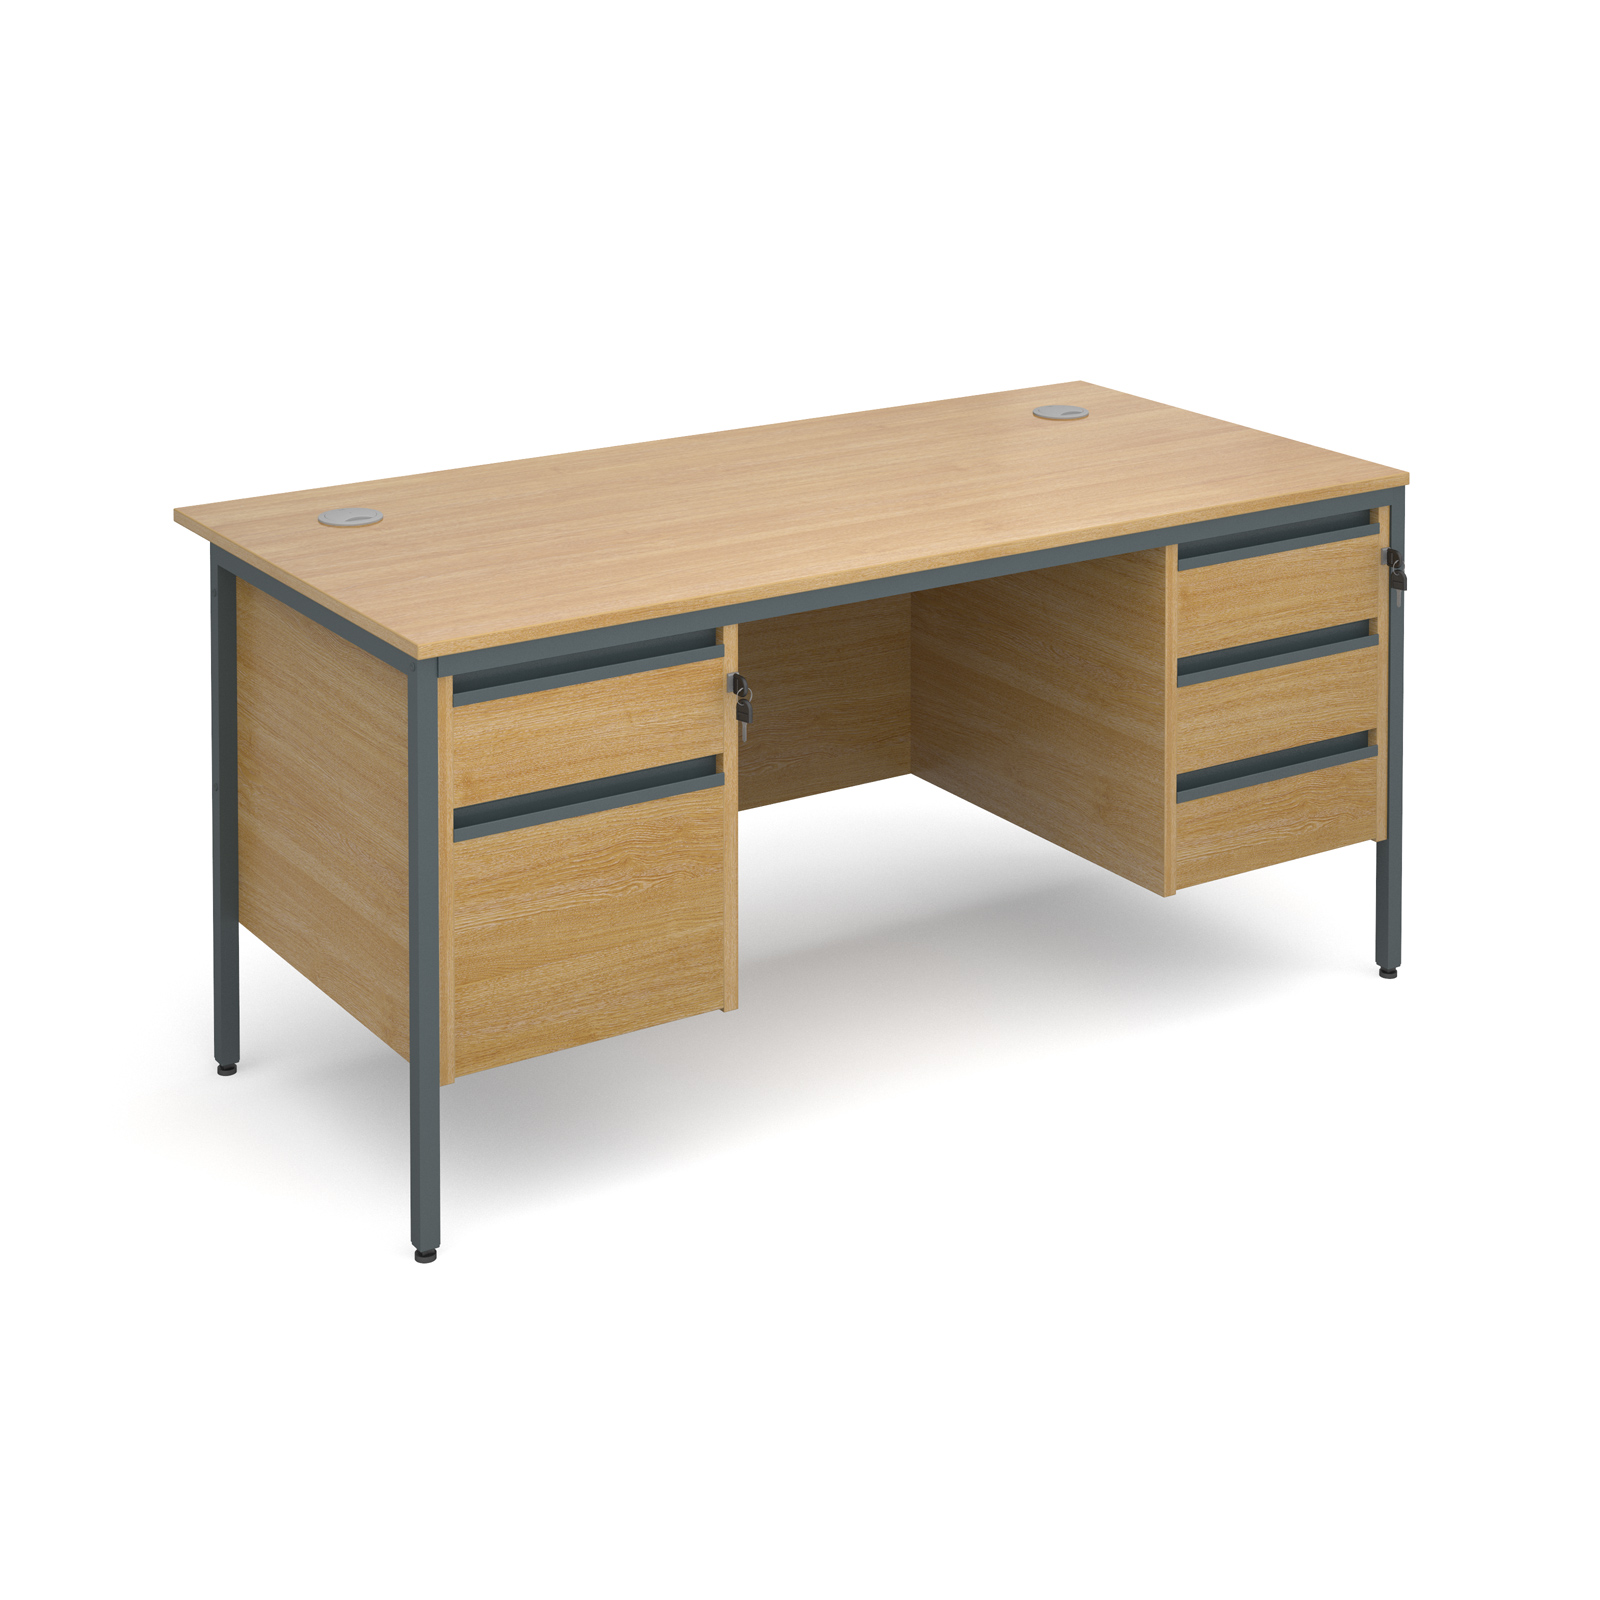 Maestro H frame straight desk with 2 and 3 drawer pedestals 1532mm - oak